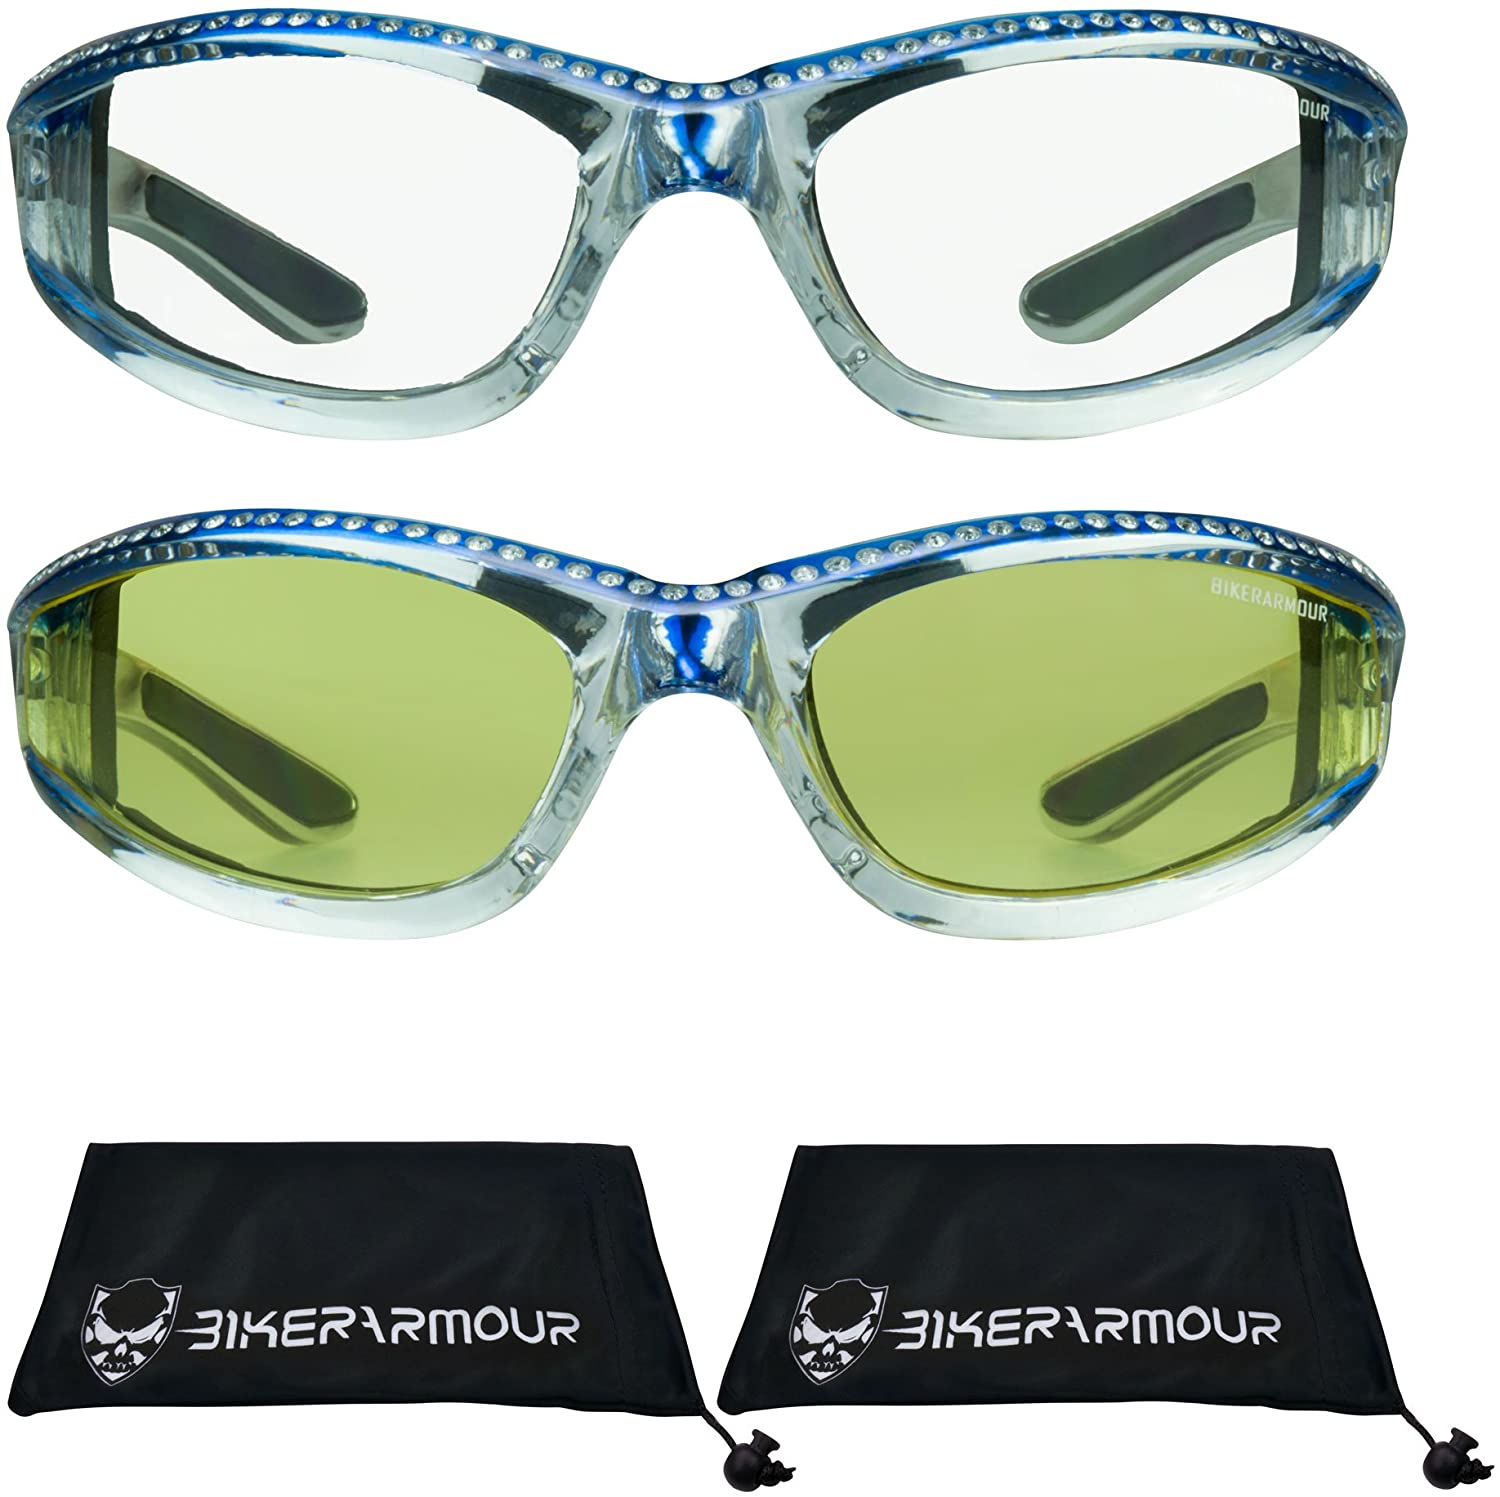 Chrome Motorcycle Safety Glasses with Rhinestones Foam Padded for Women (Blue Clear + Blue Yellow)